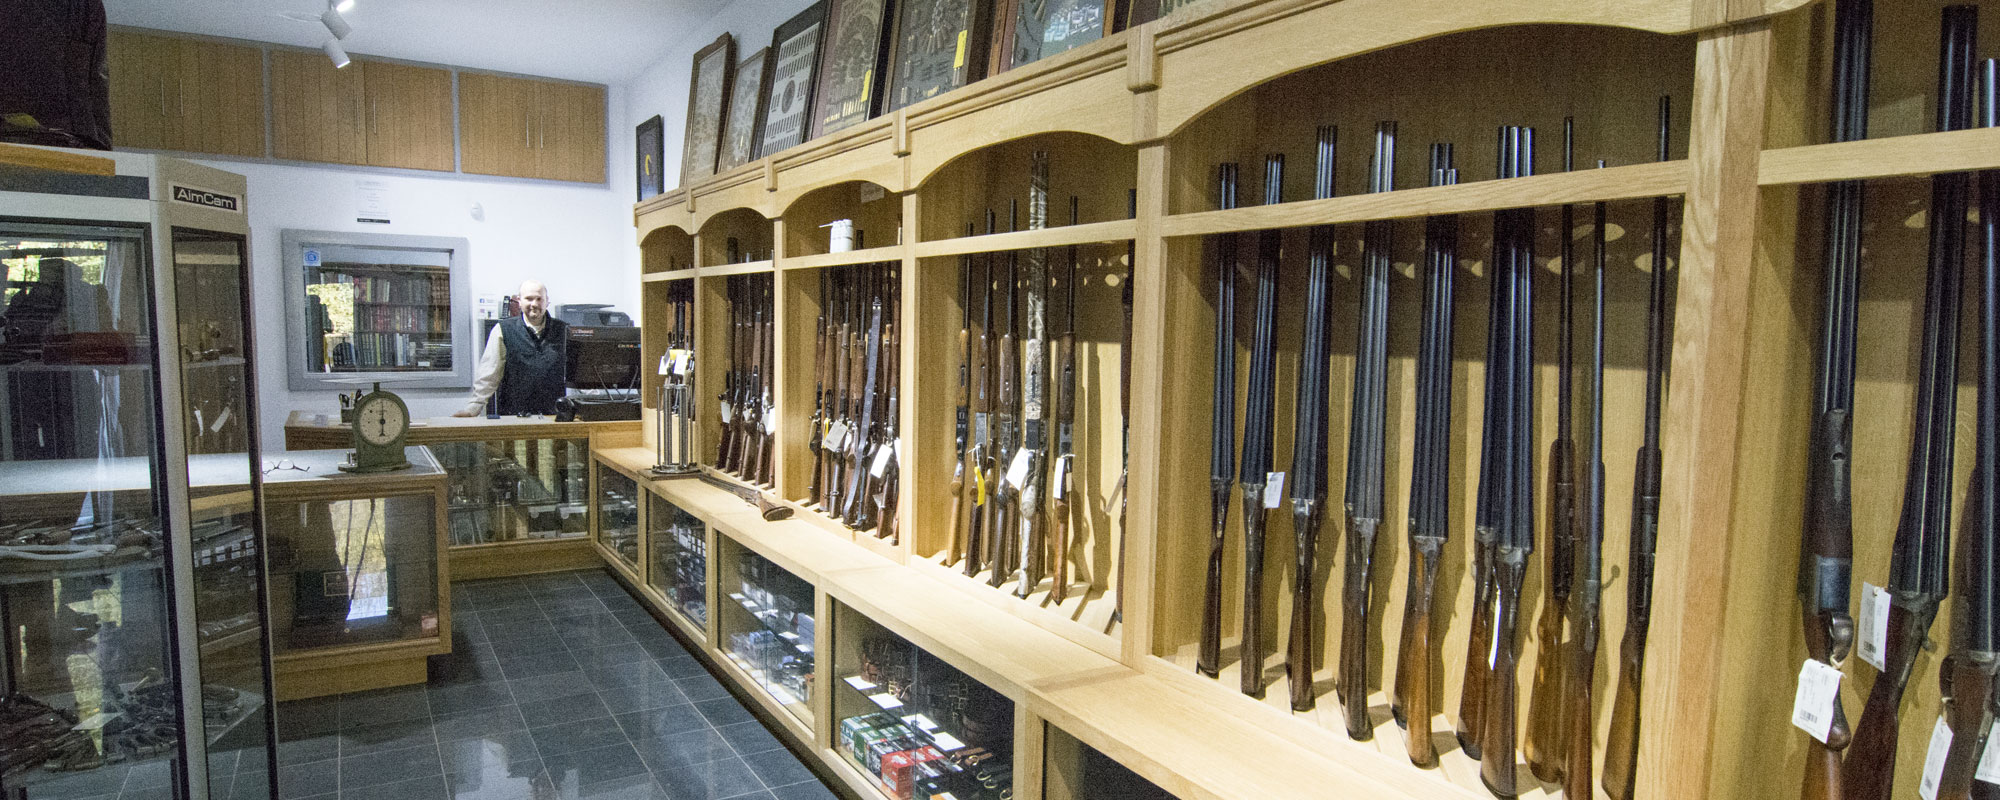 Gun showroom